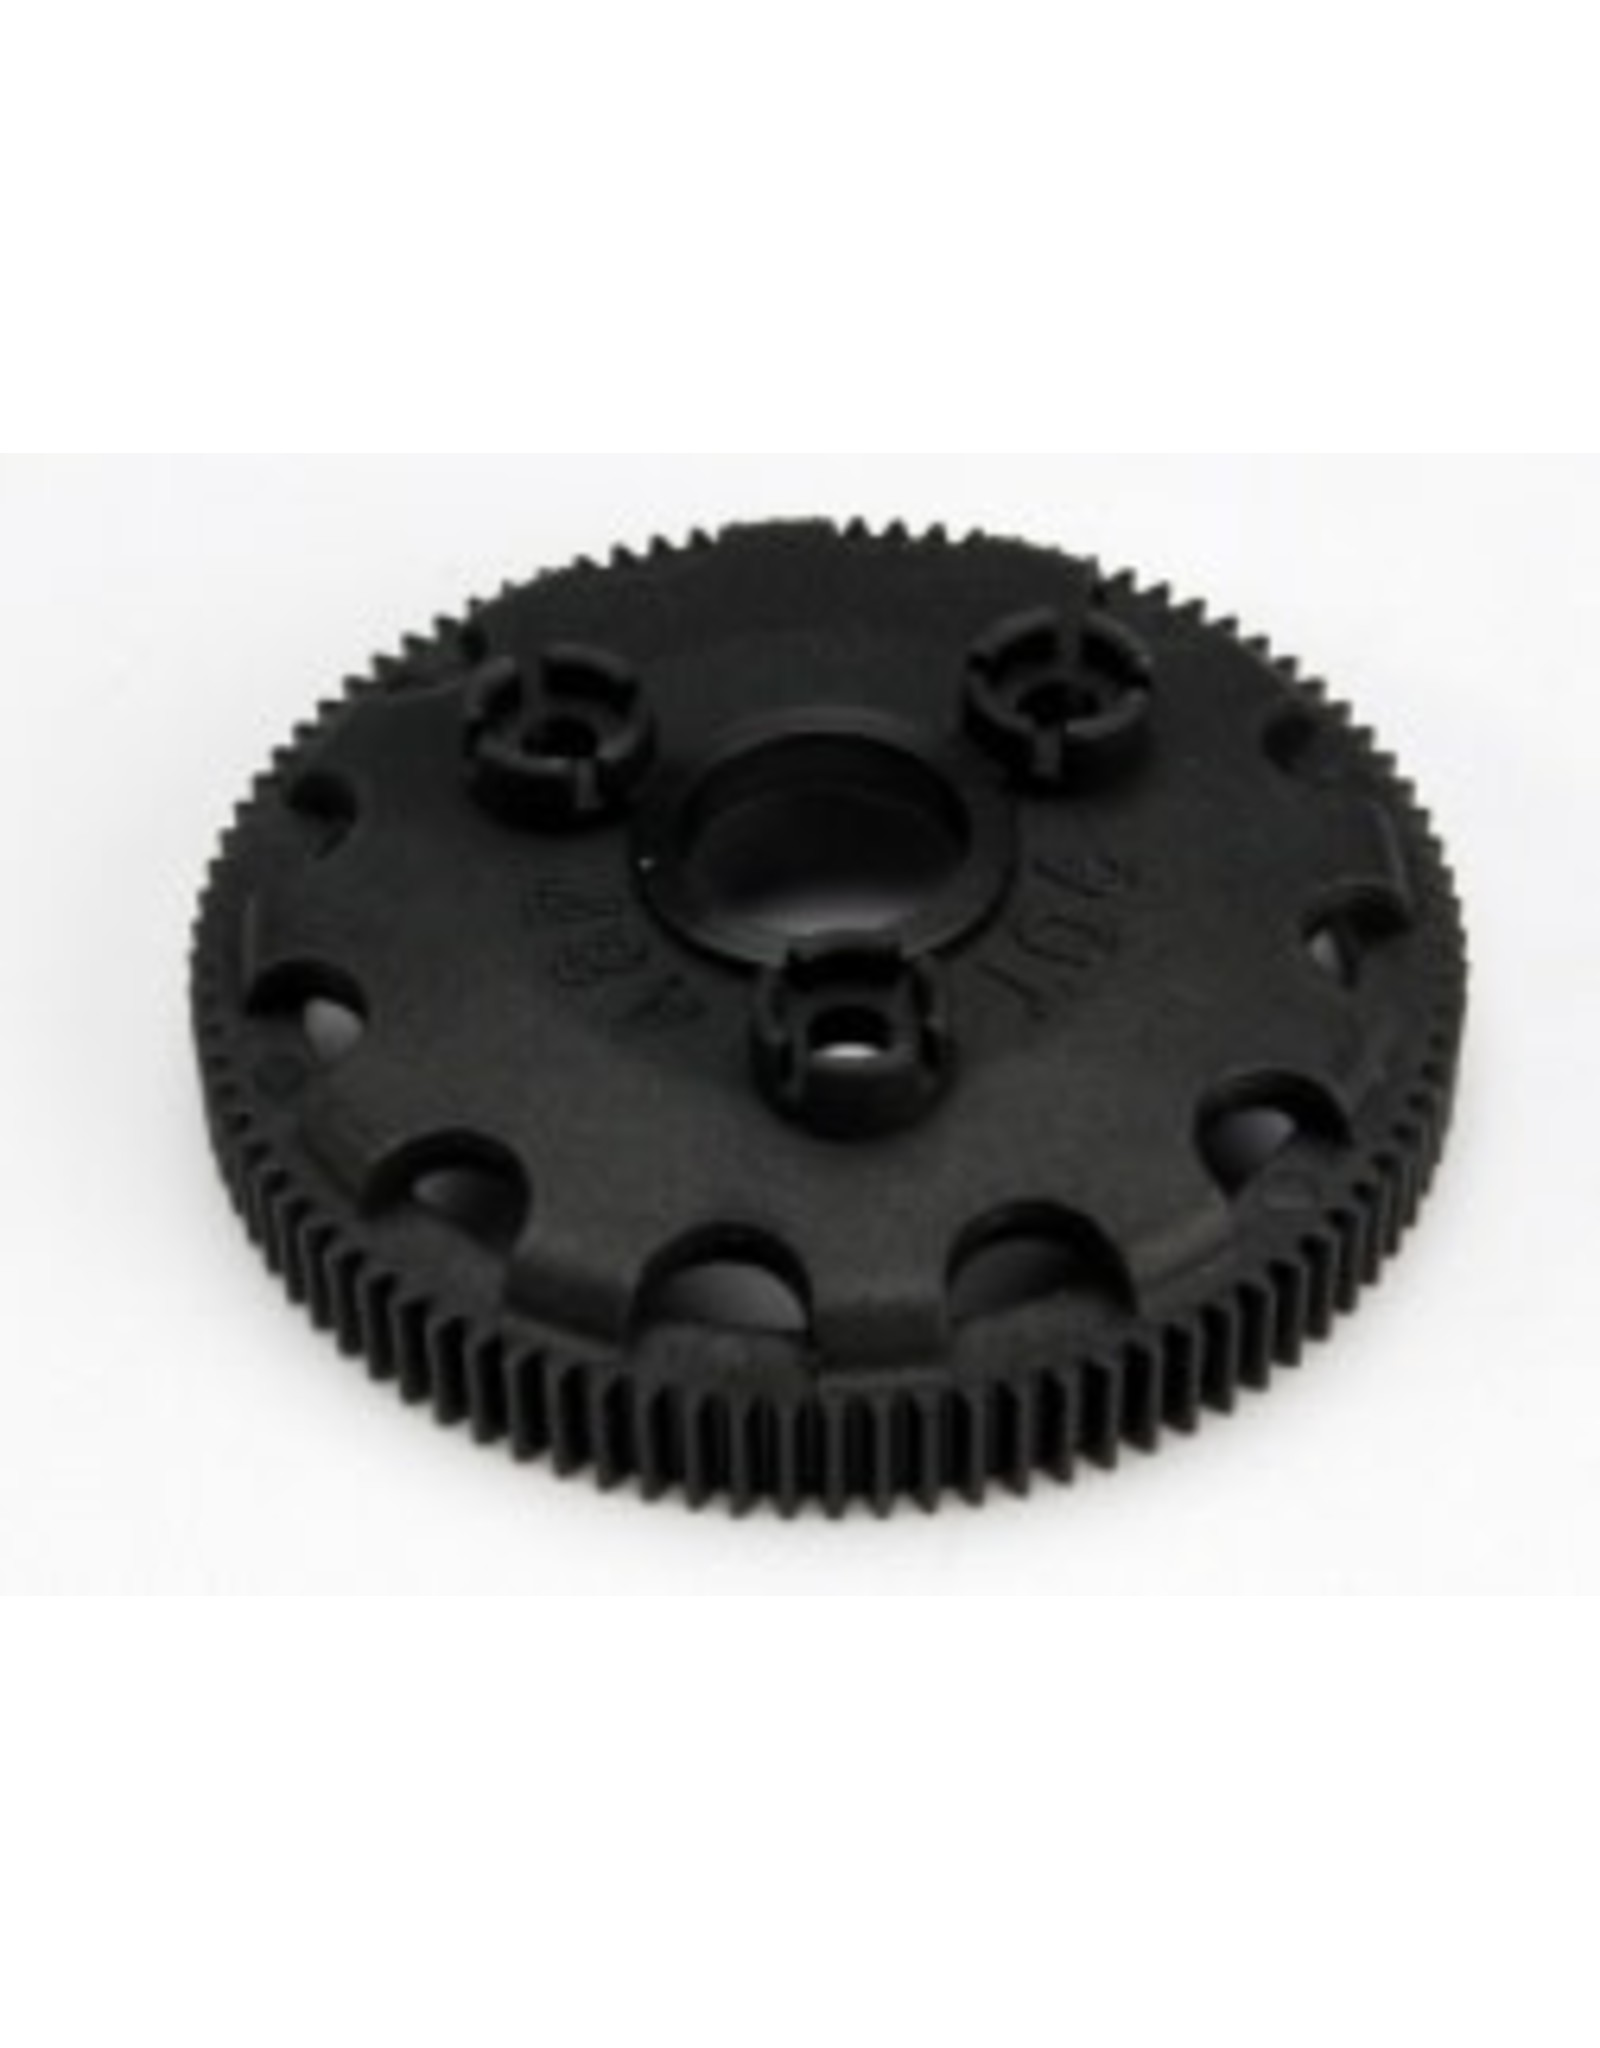 TRA 48P Spur Gear,90T : Torque Slipper Clutch